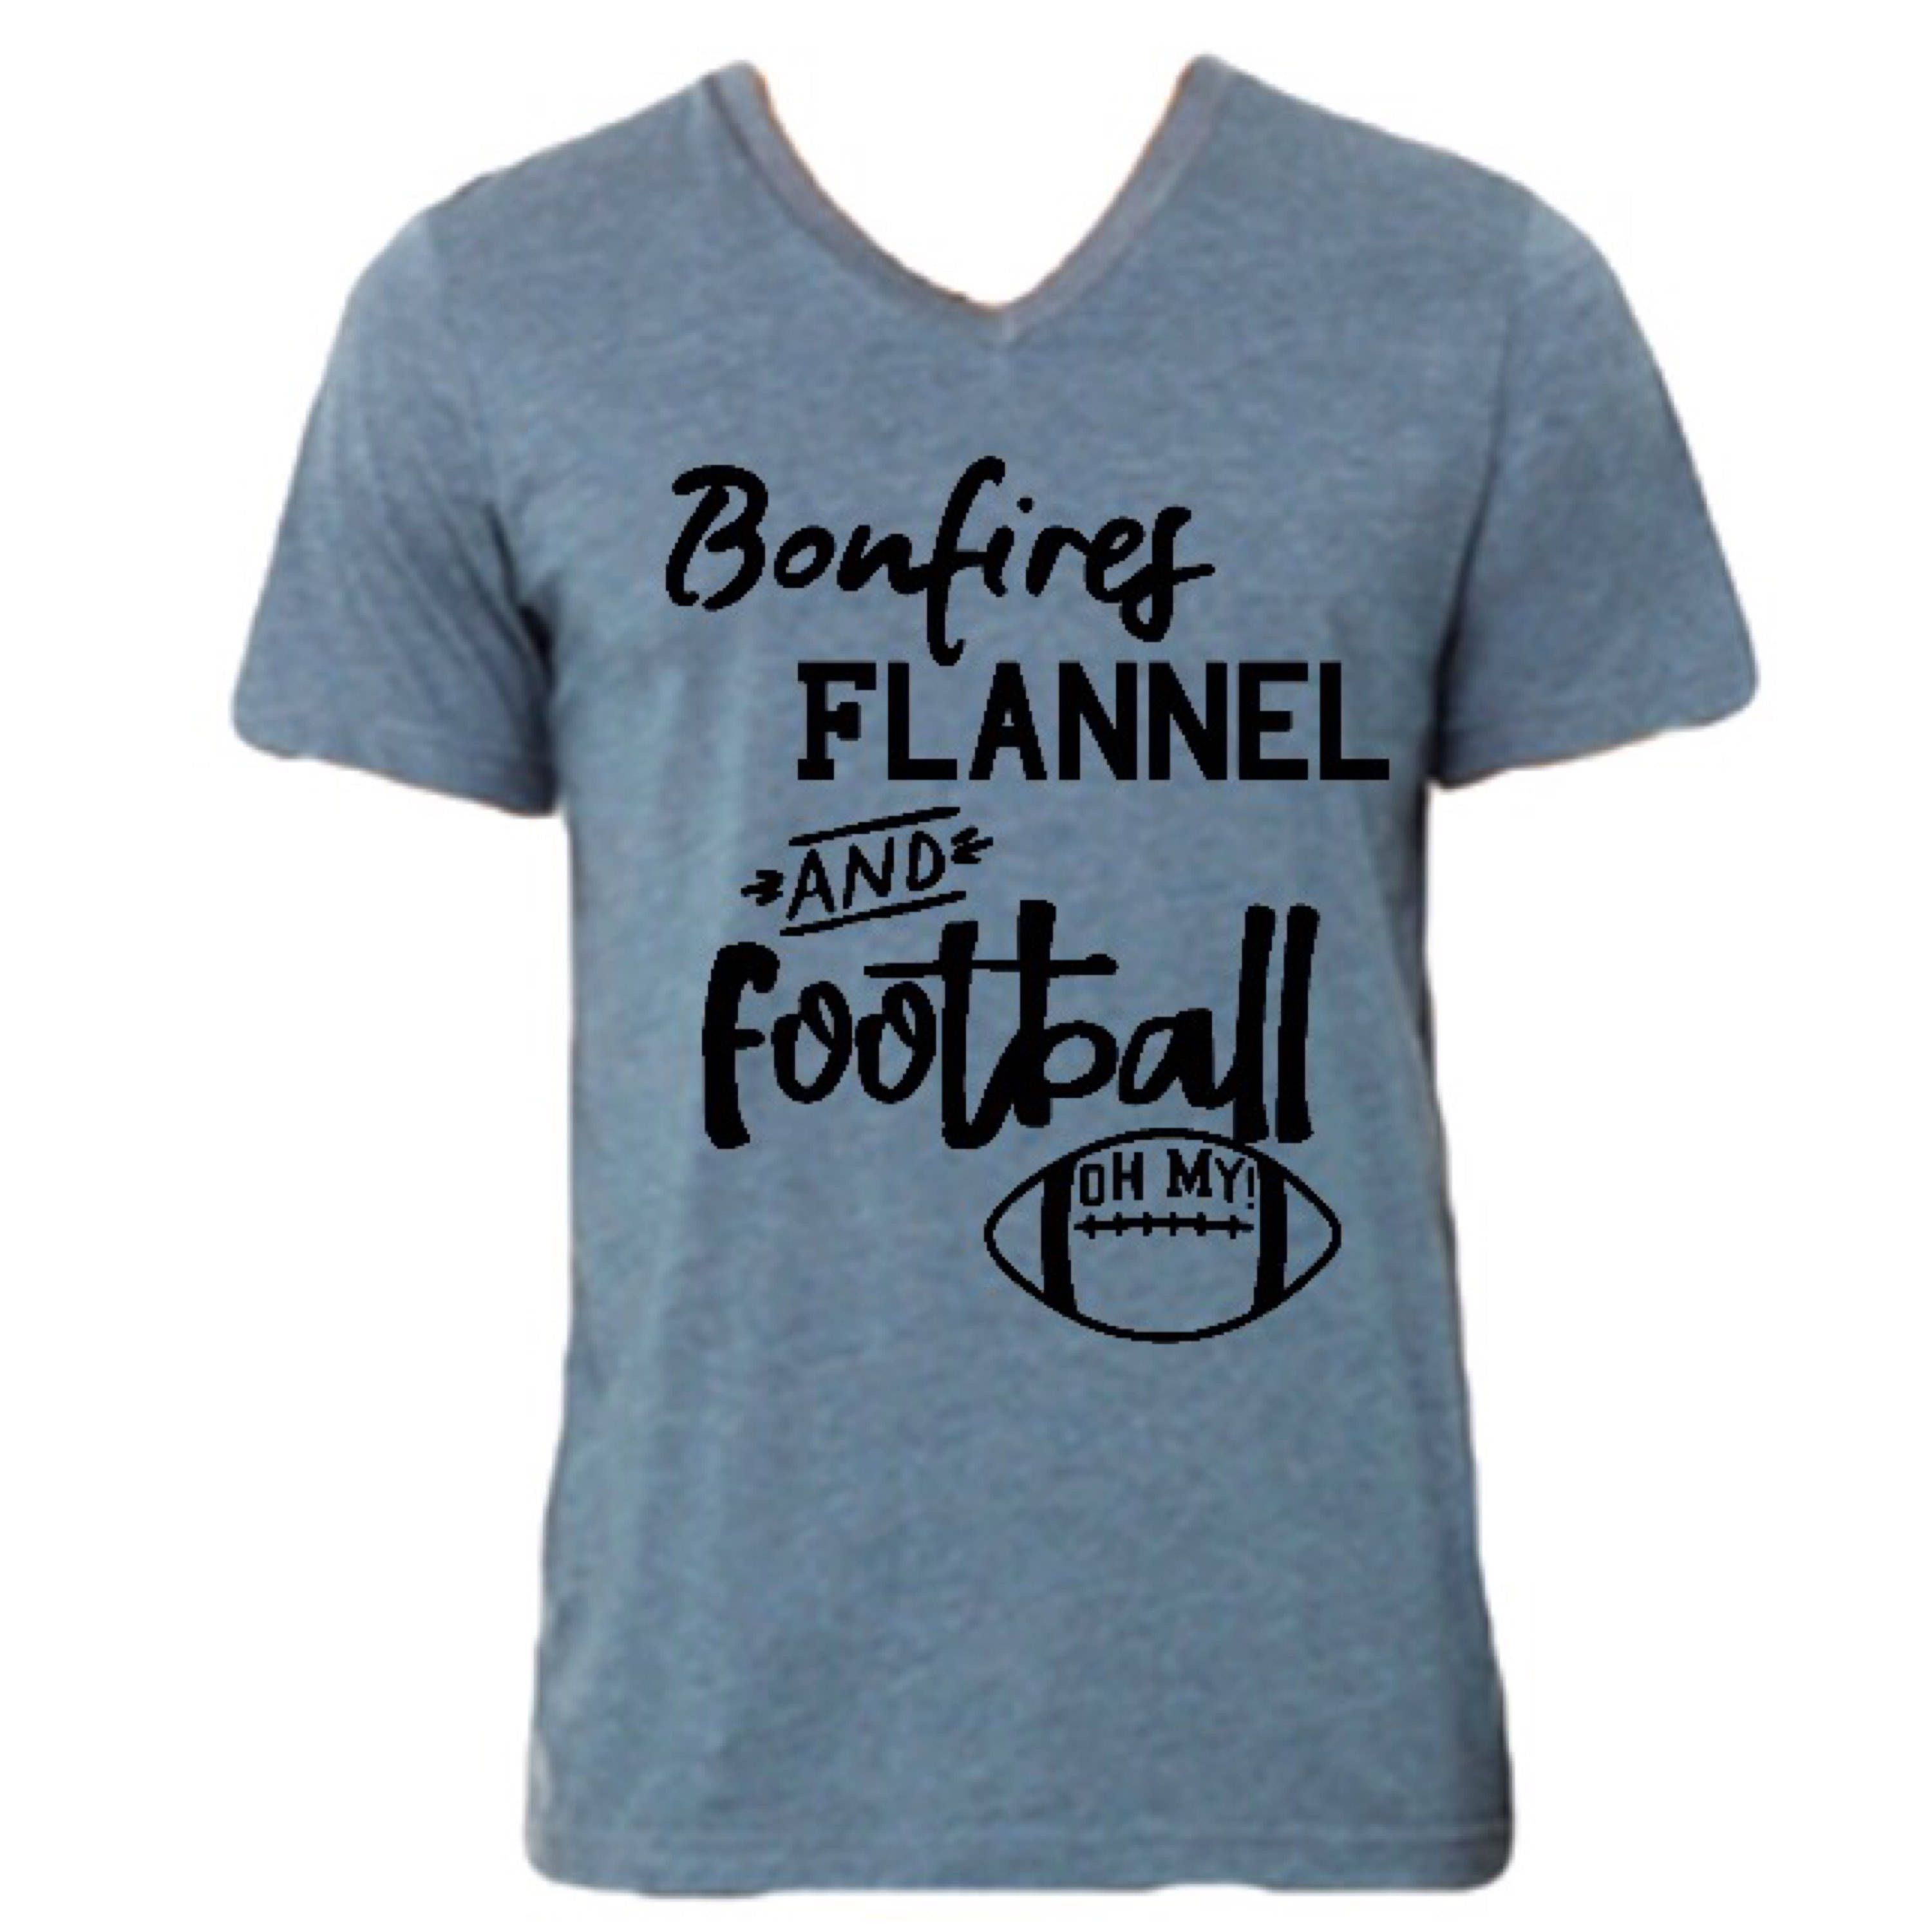 Flannel t shirts  BONFIRES FLANNEL AND FOOTBALL OH MY womenus shirt From Mama  Joey